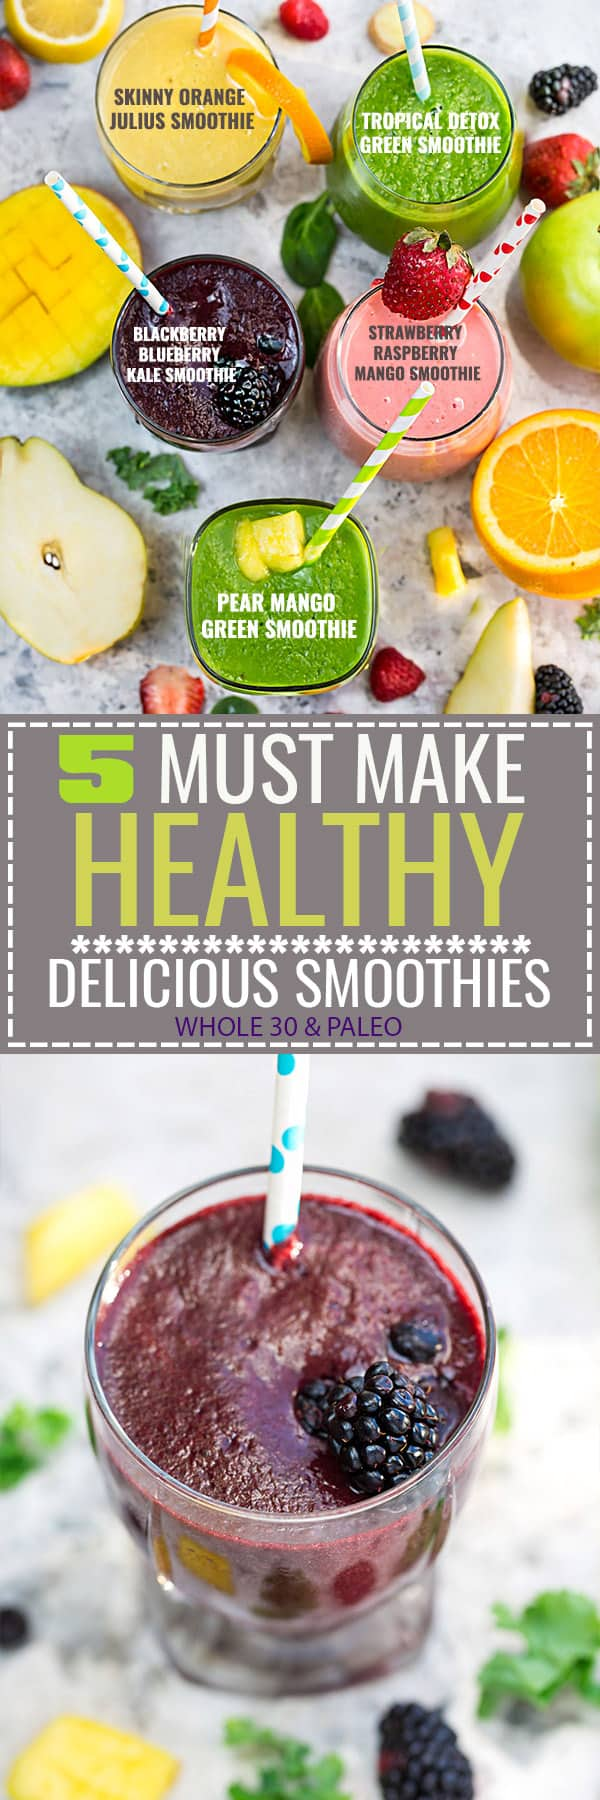 5 of the BEST tasting and Easy to make Healthy Detox Smoothie Recipes that will help you with your healthier eating goal this year! Paleo, Whole 30 compliant with no bananas, dairy and refined sugar free!